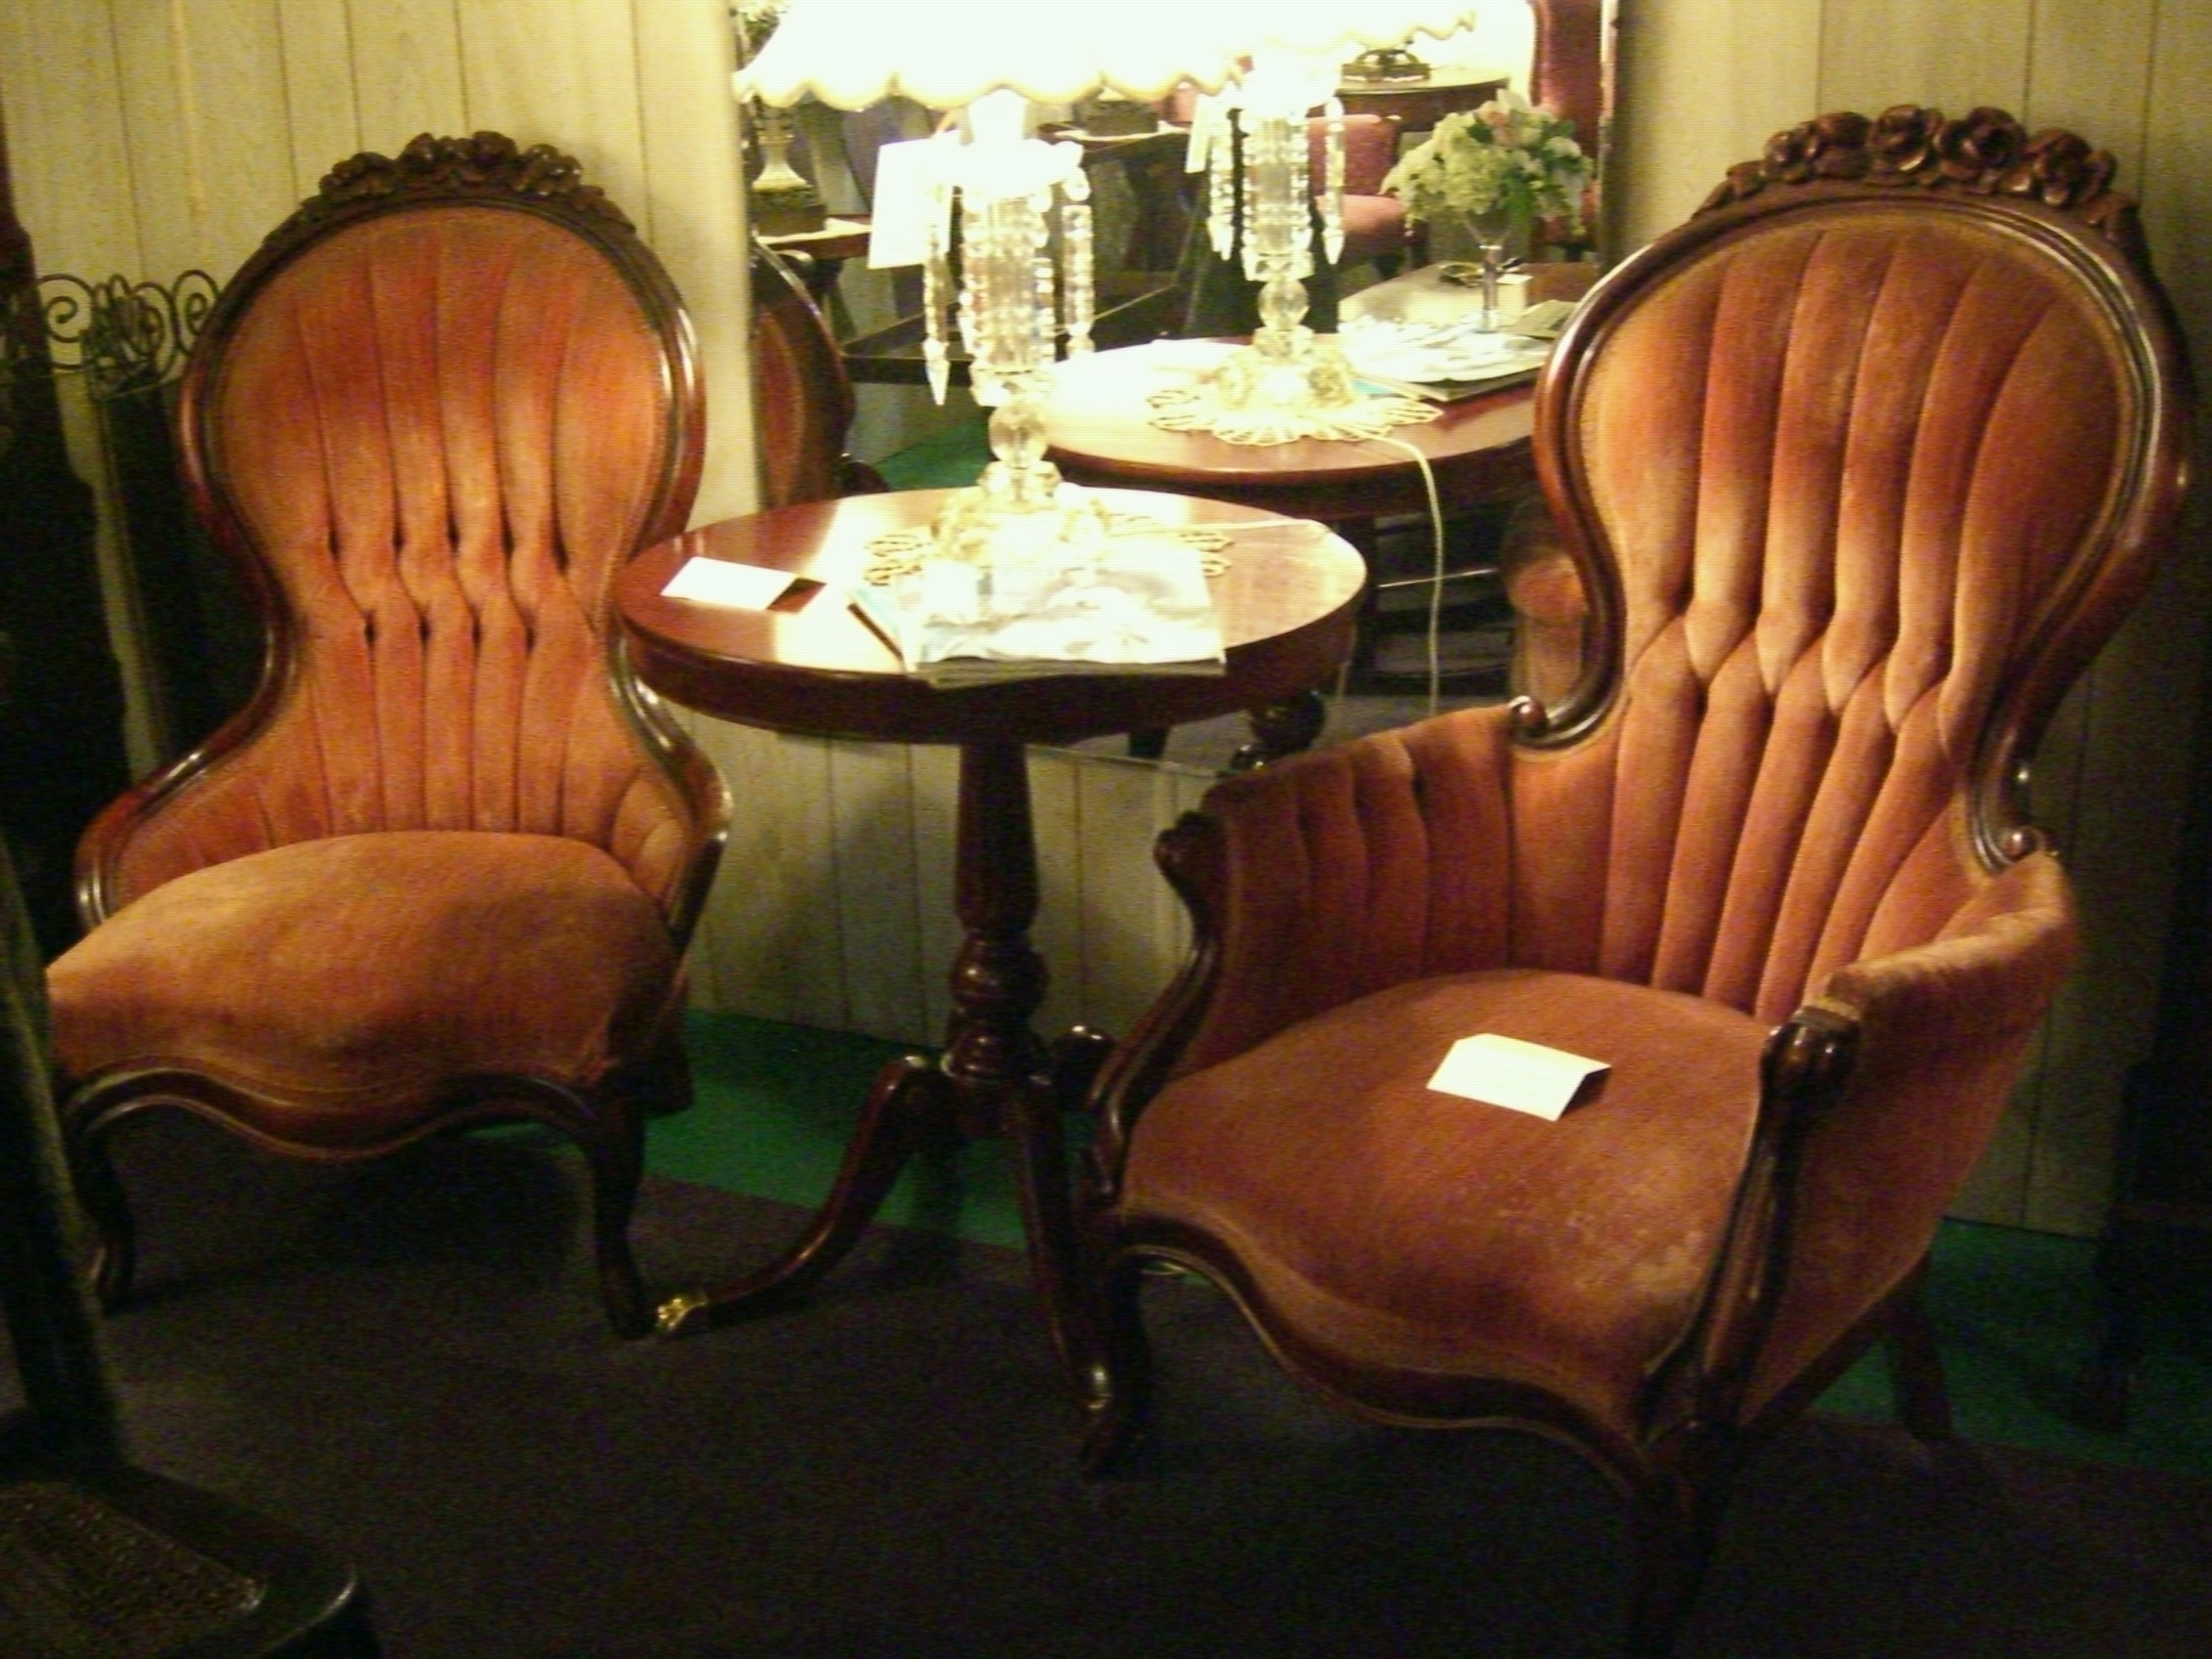 Two upholstered c 1940 Victorian Parlor chairs